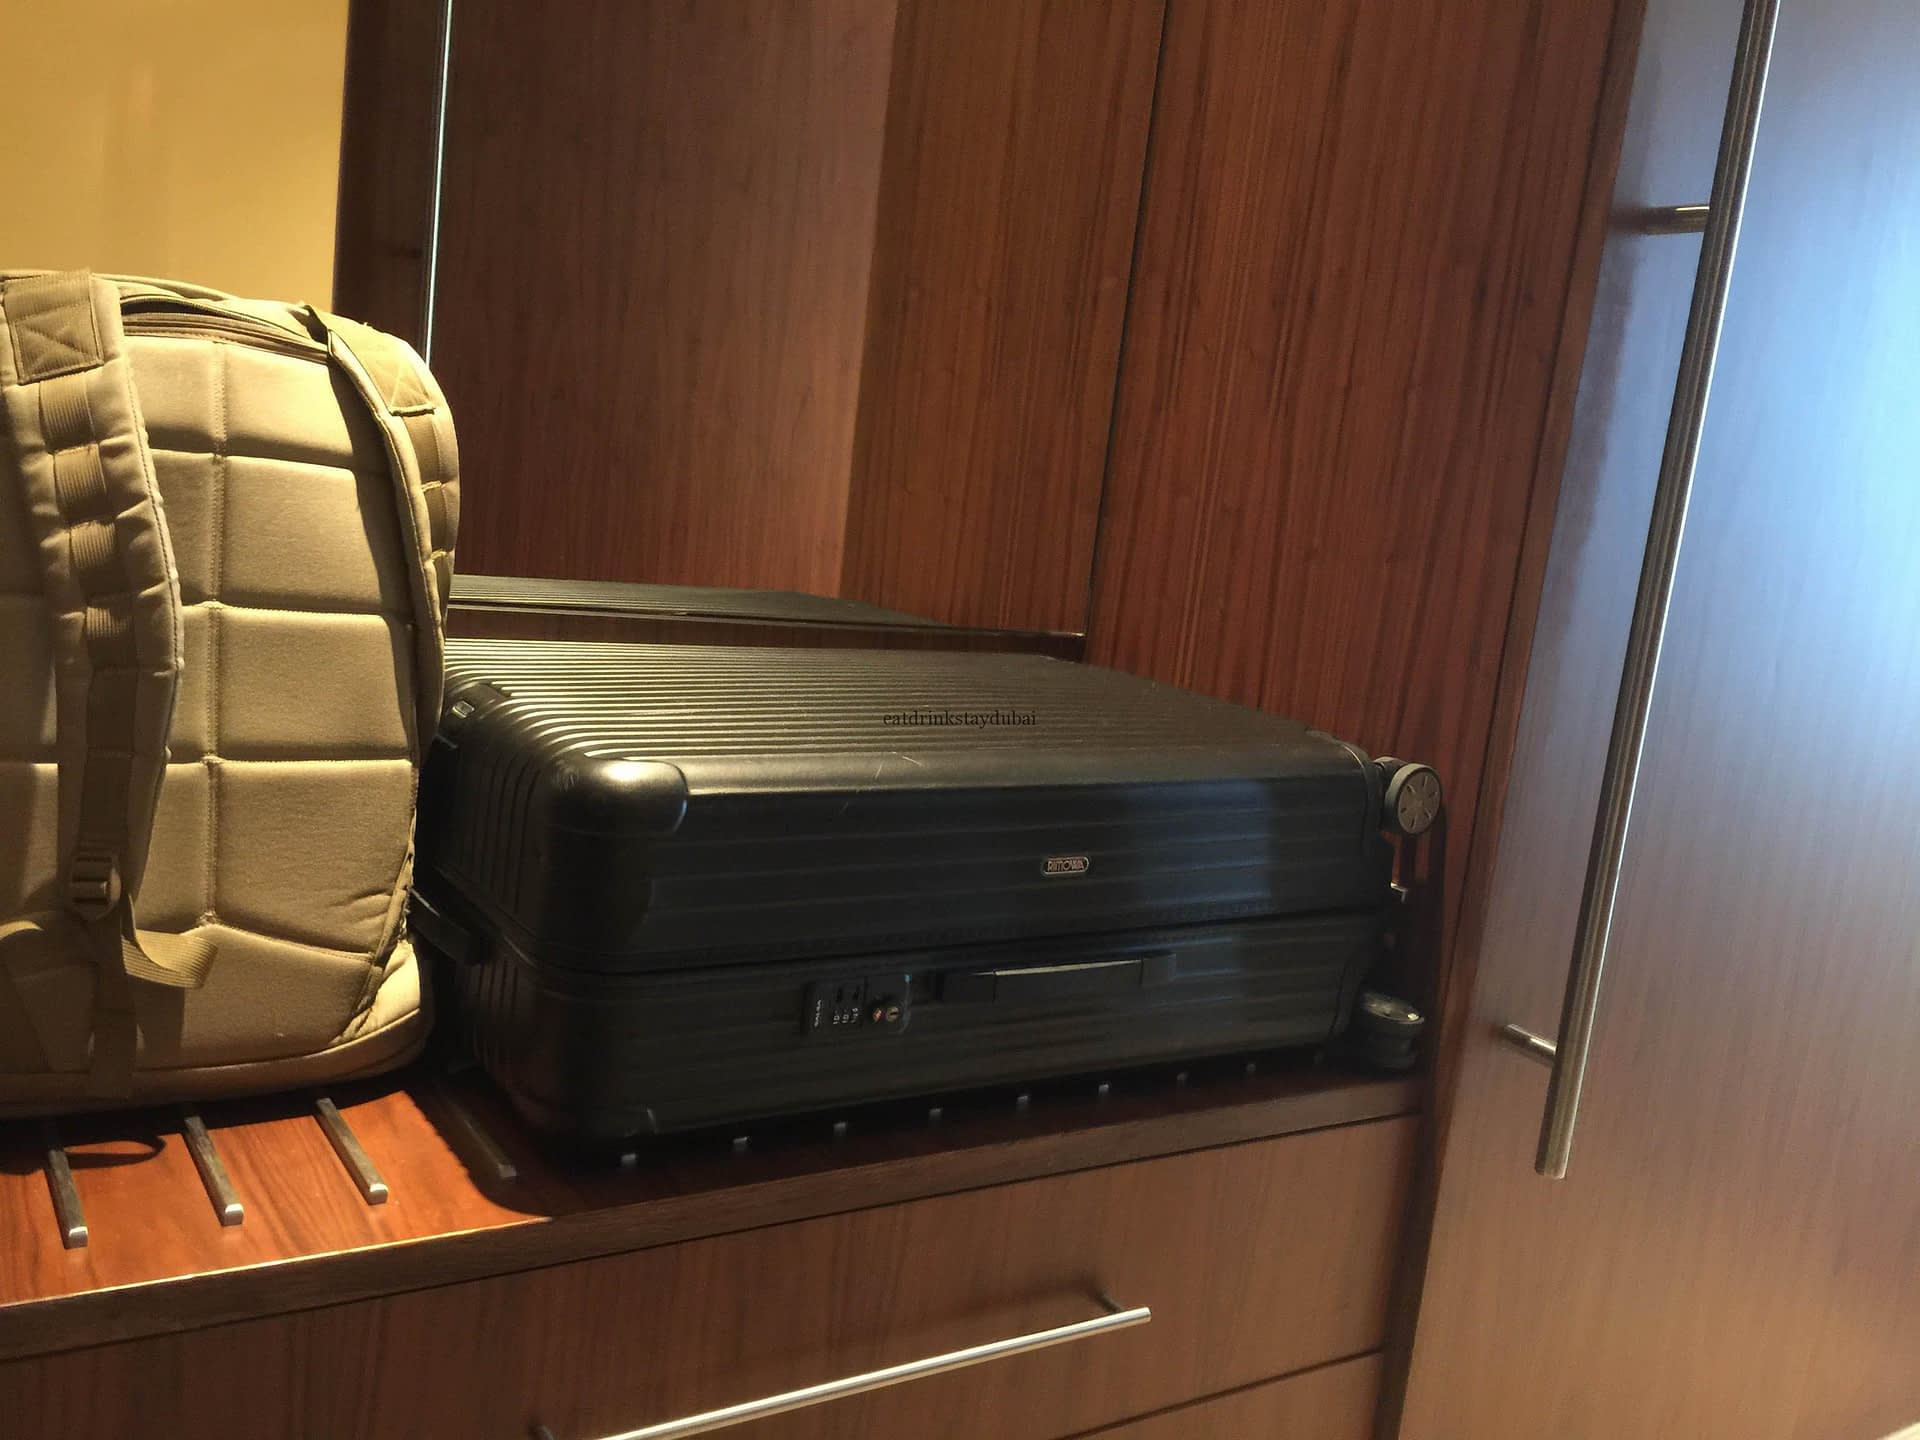 Hotel Review JW Marriott Marquis Dubai: Bedroom Luggage Rack